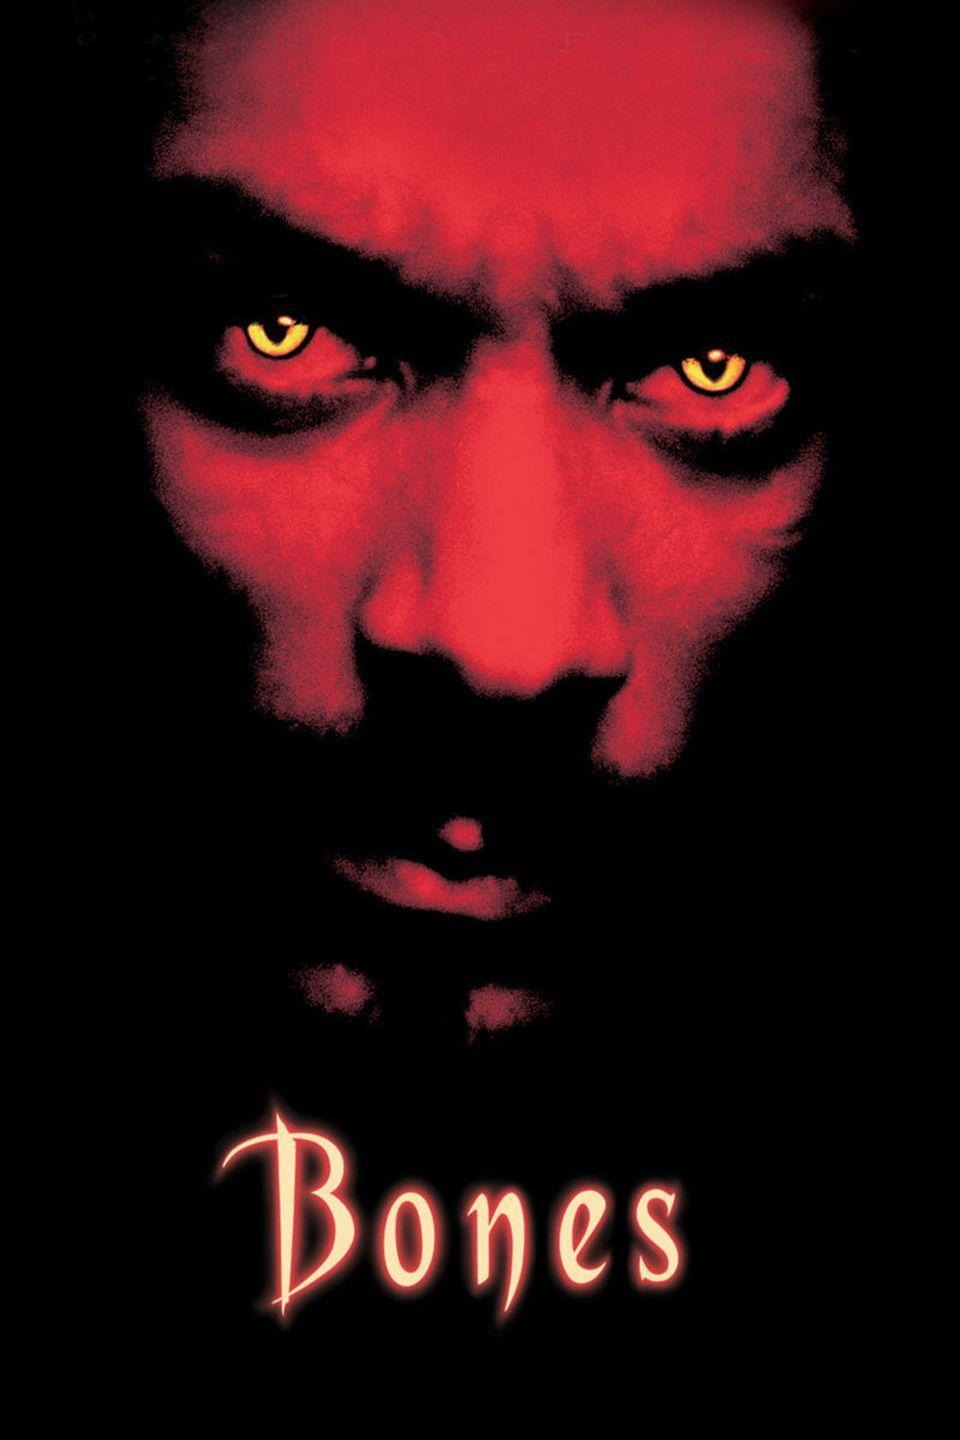 <p>A few other great horror movies came out this year (seriously, how scary was <em>The Others</em>?), but when you have to choose one, you just can't pass up <em>Bones</em>, which features Snoop Dogg as a gangster who rises from the dead to seek revenge on fools who did him wrong.</p>